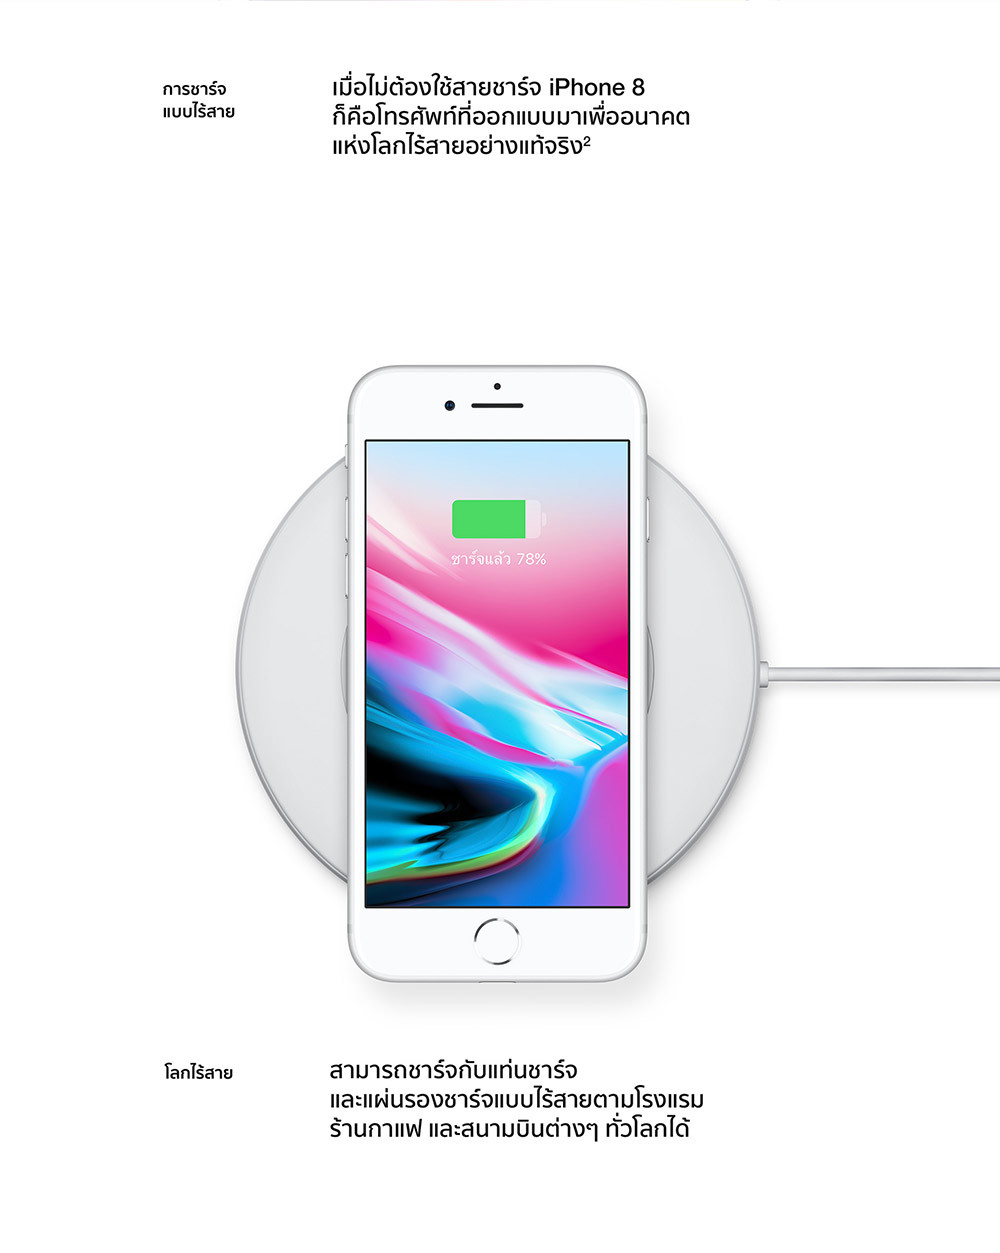 longpage-iphone8-23.jpg